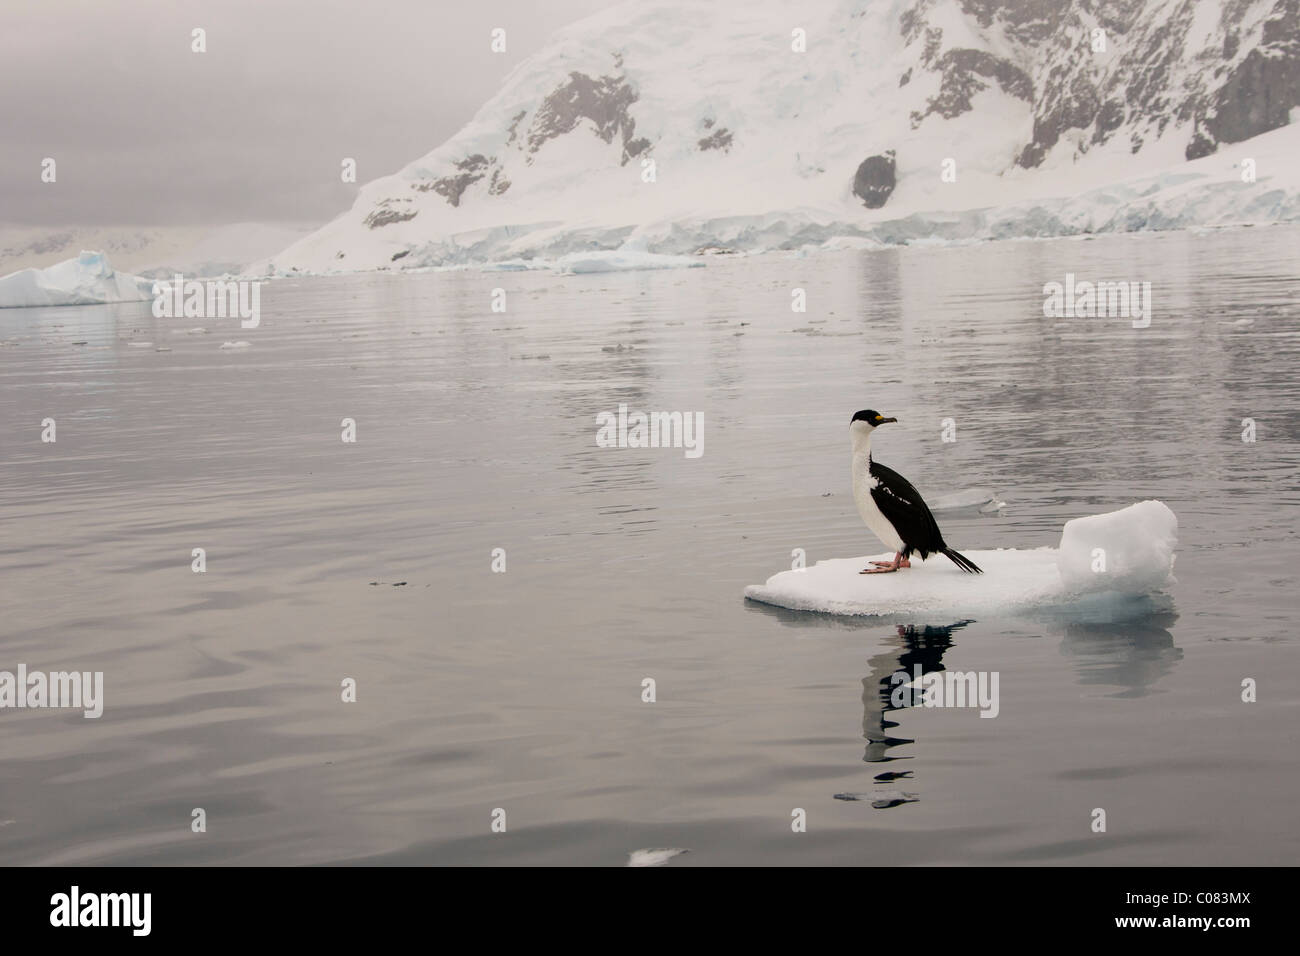 Adult Antarctic Shag sitting on ice flow, Brown's Bluff, Antarctic Peninsula. - Stock Image